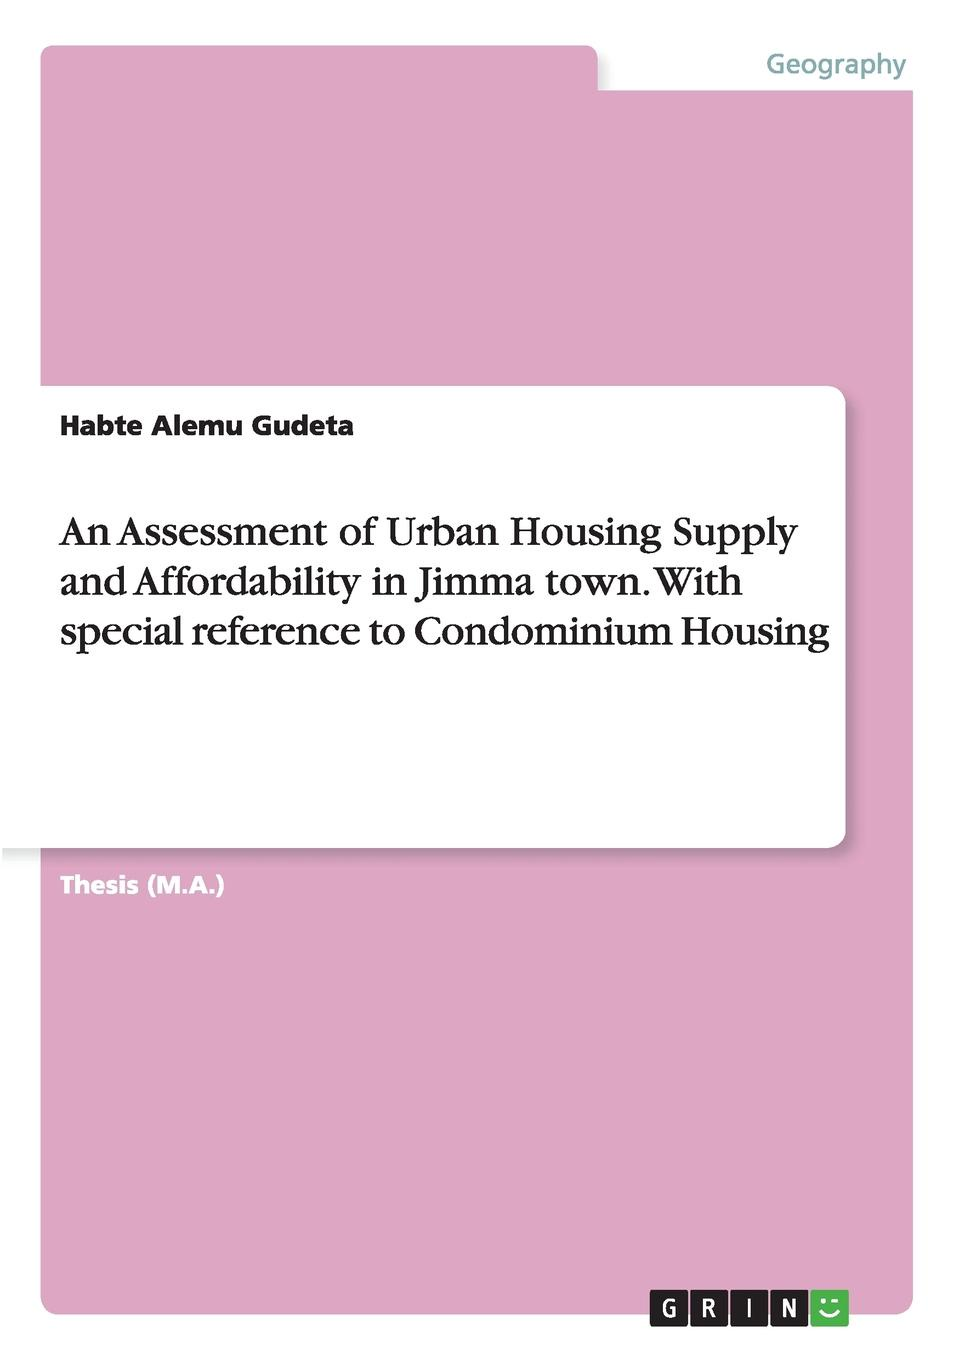 Habte Alemu Gudeta An Assessment of Urban Housing Supply and Affordability in Jimma town. With special reference to Condominium Housing 456 234 replacement projector lamp with housing for dukane imagepro 8751